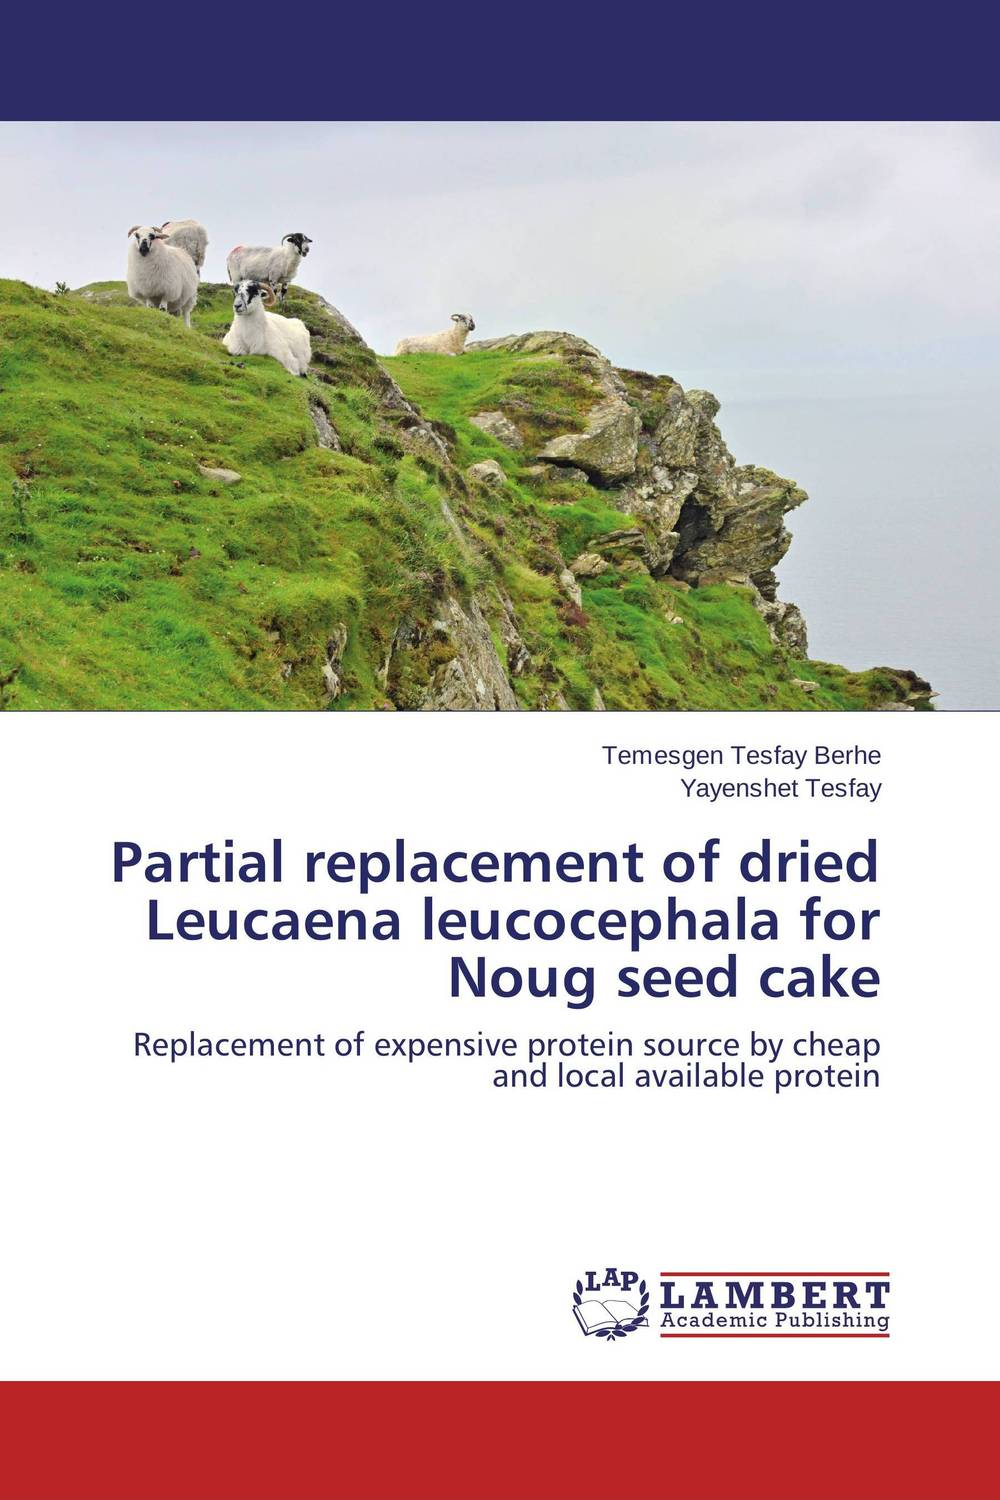 Фото Partial replacement of dried Leucaena leucocephala for Noug seed cake cervical cancer in amhara region in ethiopia